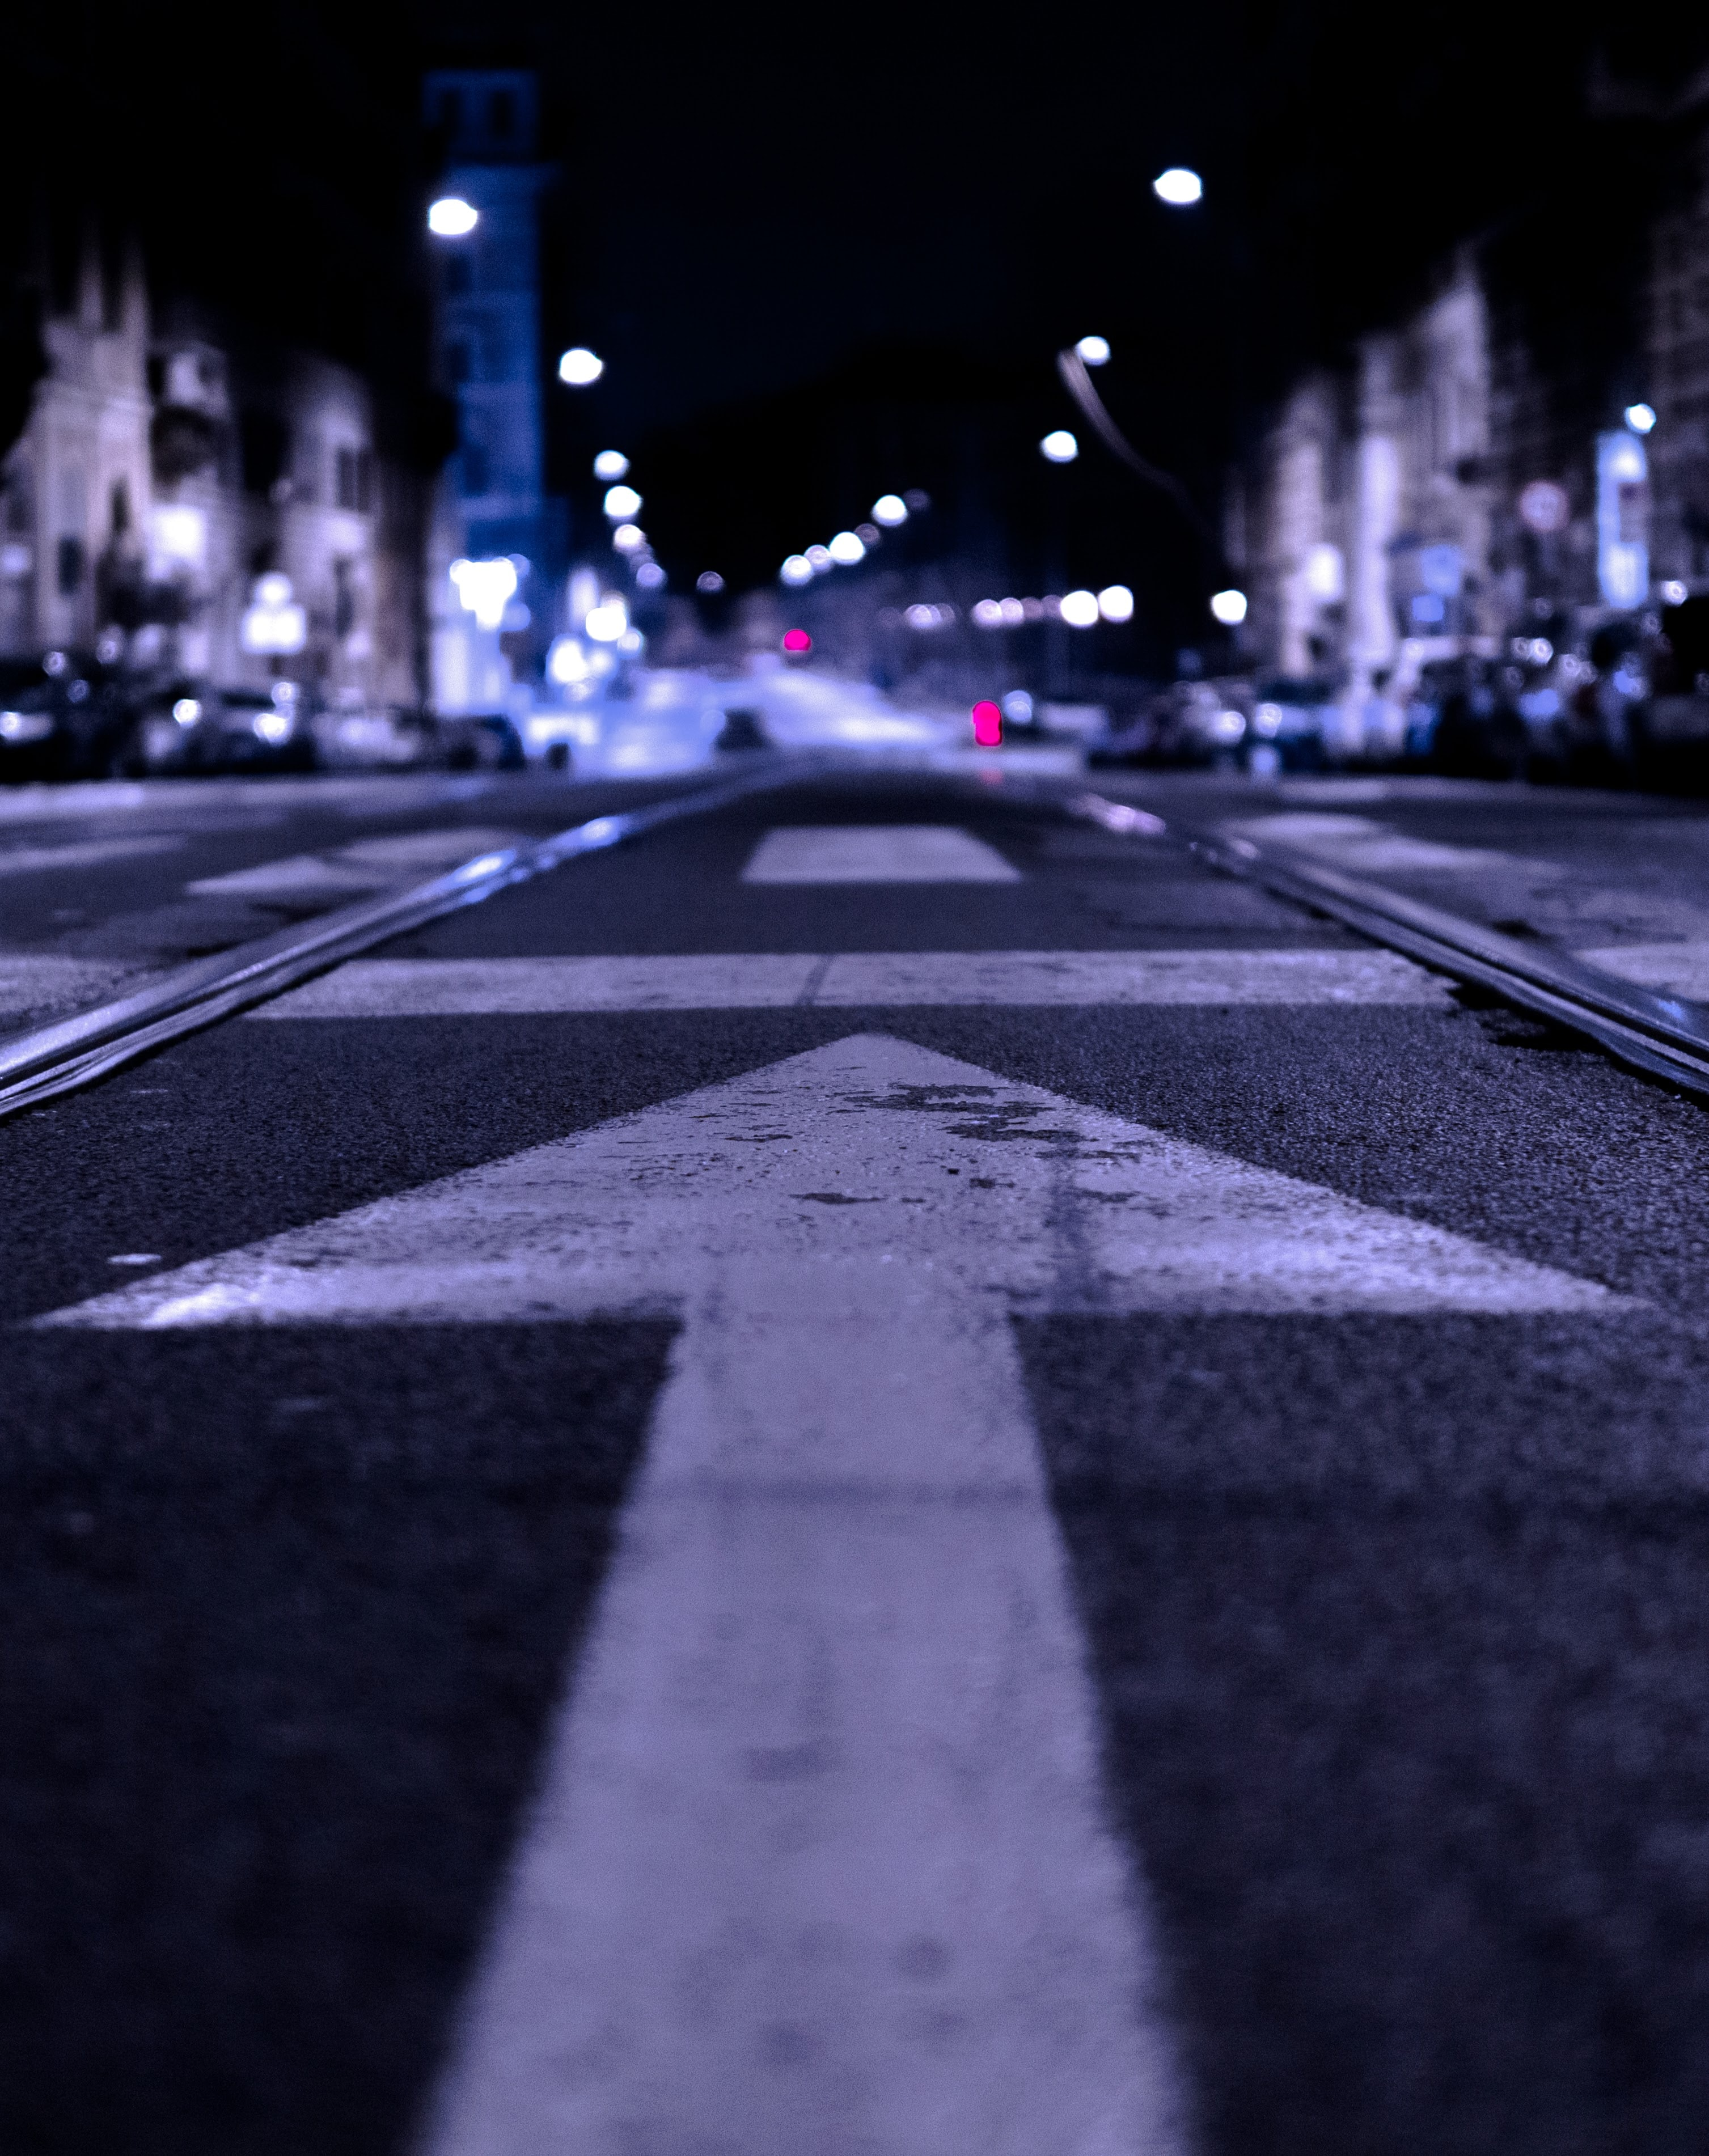 A white arrow painted on an asphalt road in Rome in the evening